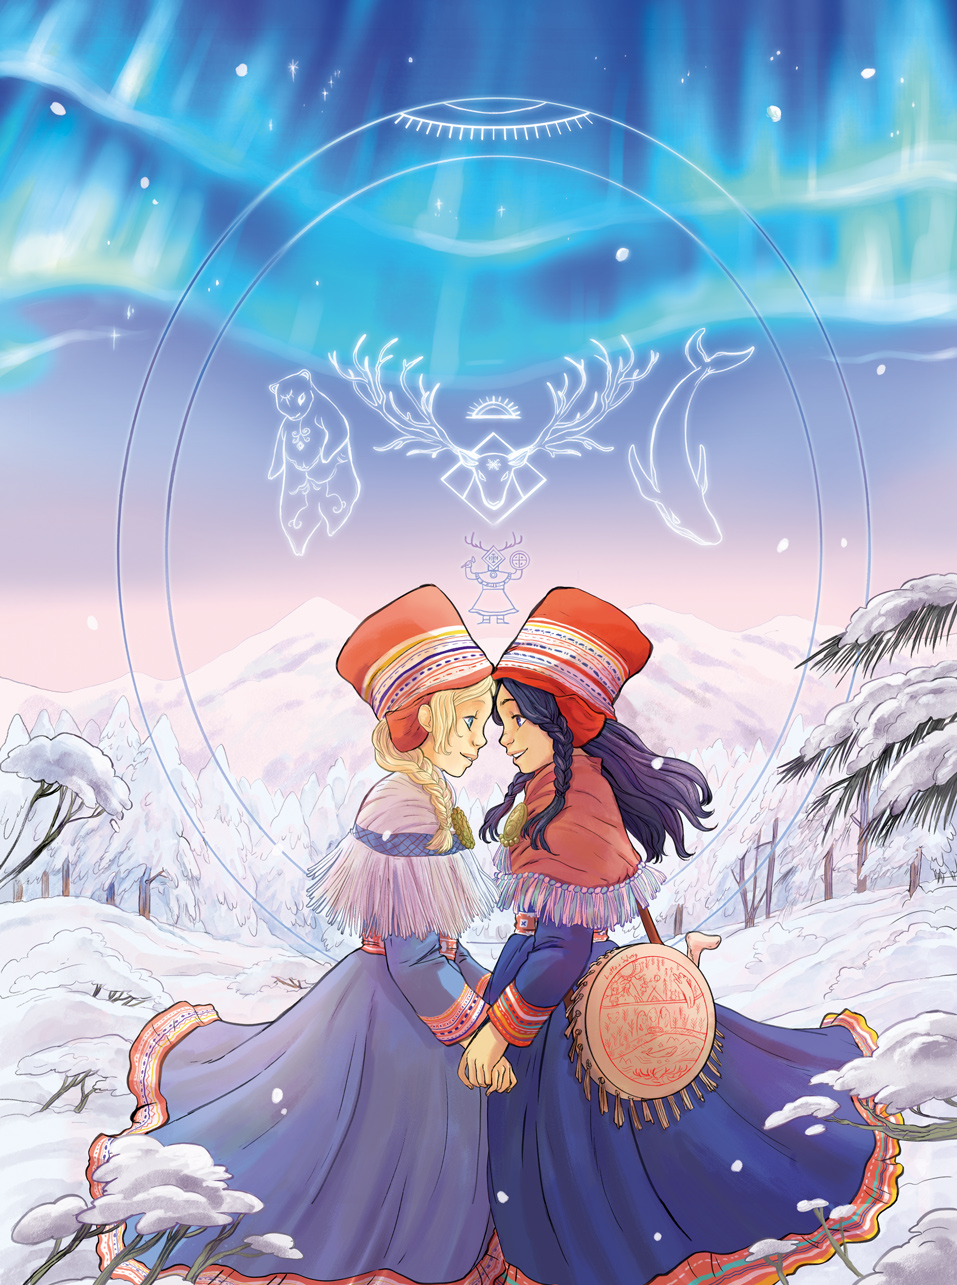 Cover-of-the comic.book le-voyages-de-lotta sisters sami people northern Lights